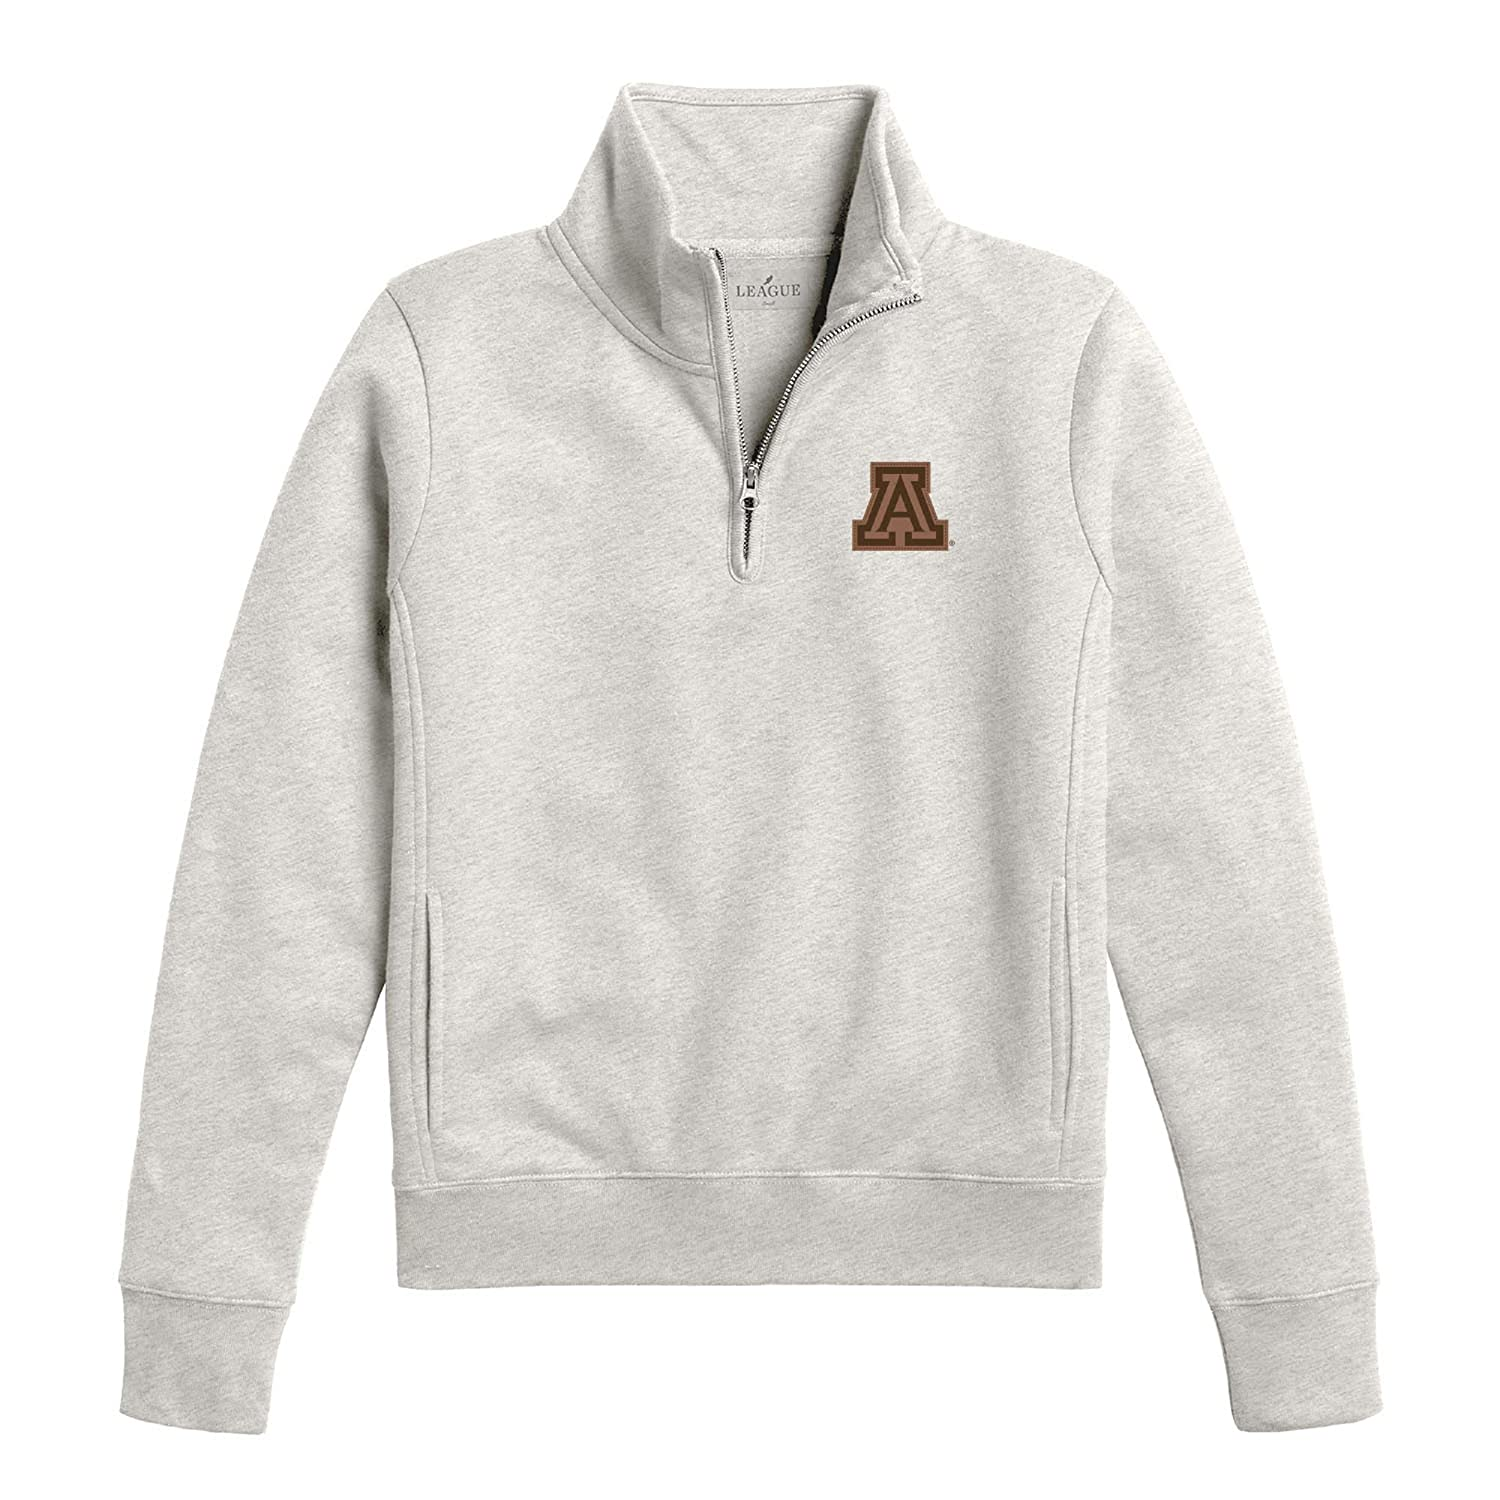 Oatmeal NCAA Womens Arizona Wildcats League Academy Qtr Zip X-Large